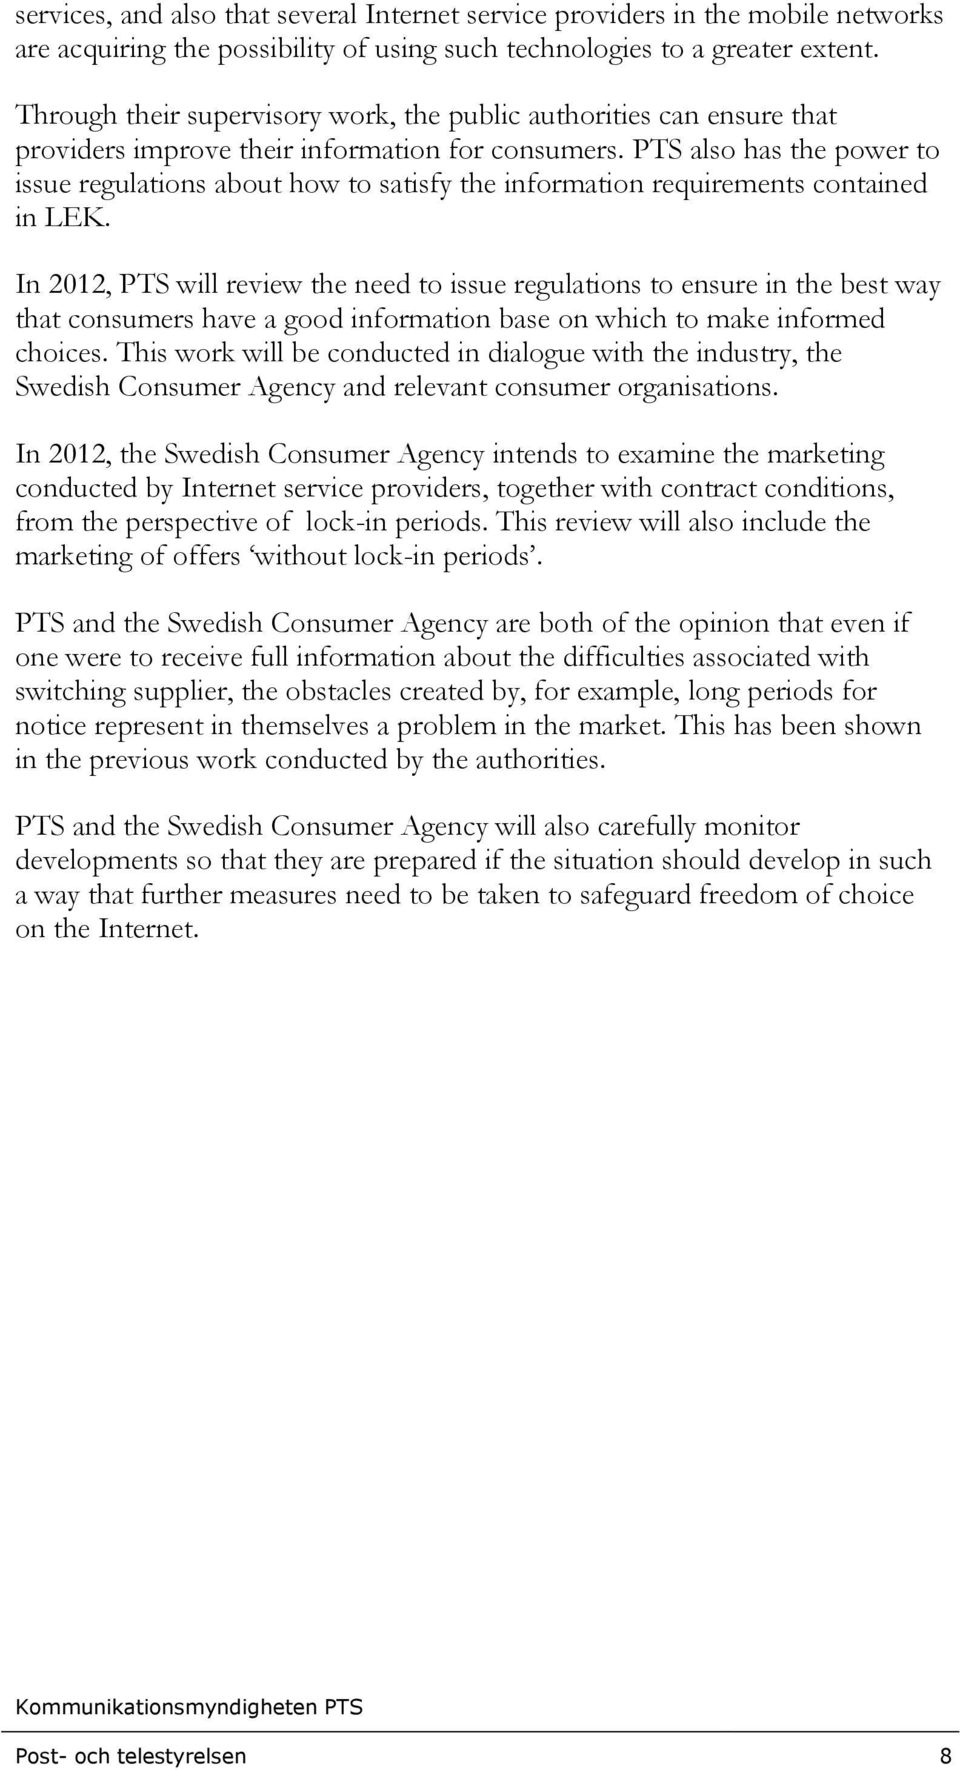 PTS also has the power to issue regulations about how to satisfy the information requirements contained in LEK.